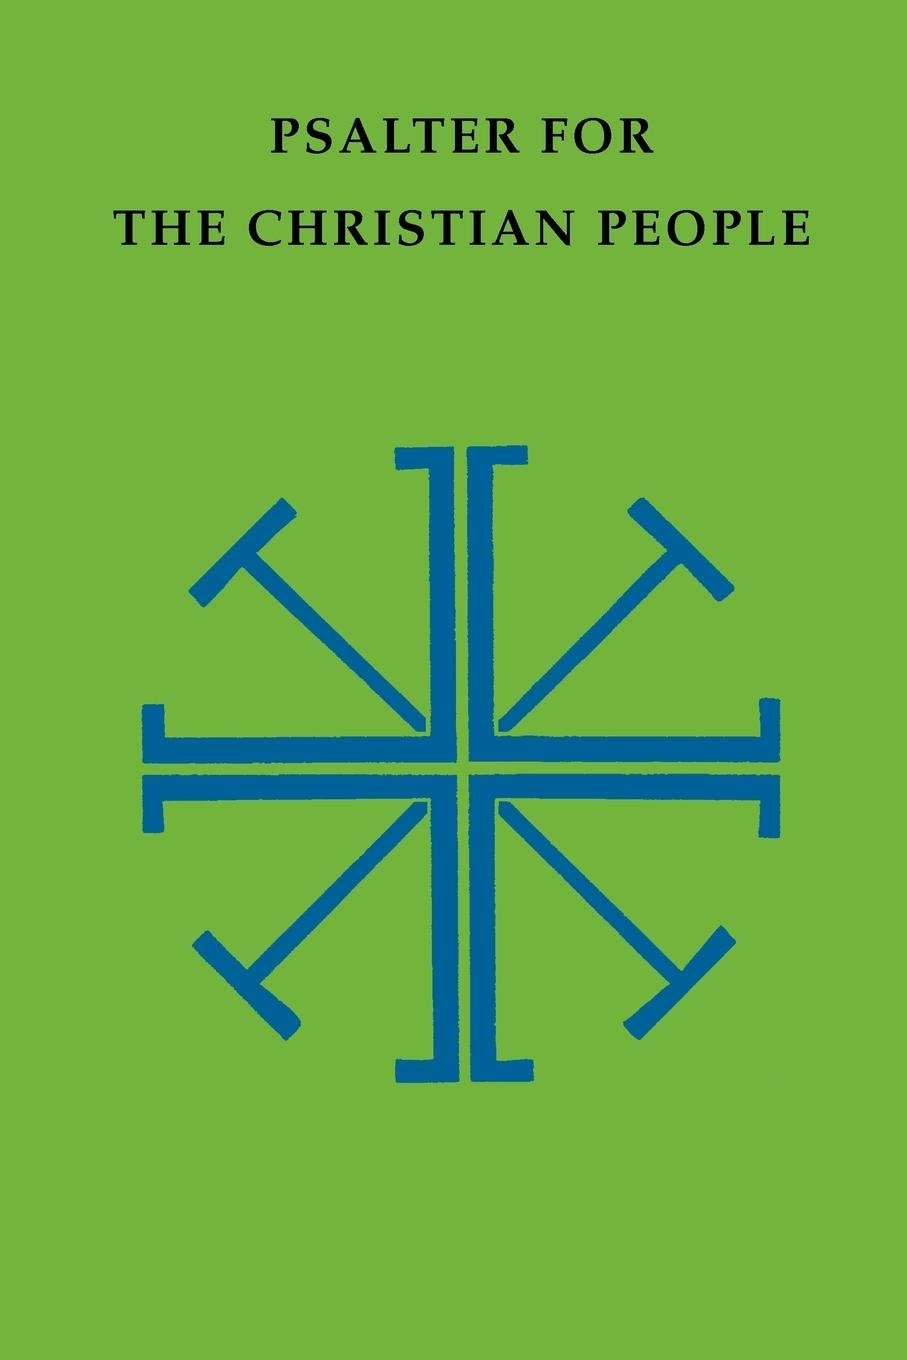 Psalter for the Christian People: An Inclusive Language ReVision of the Psalter of the  Book of Common Prayer 1979 (Pueblo Books) by Pueblo Books